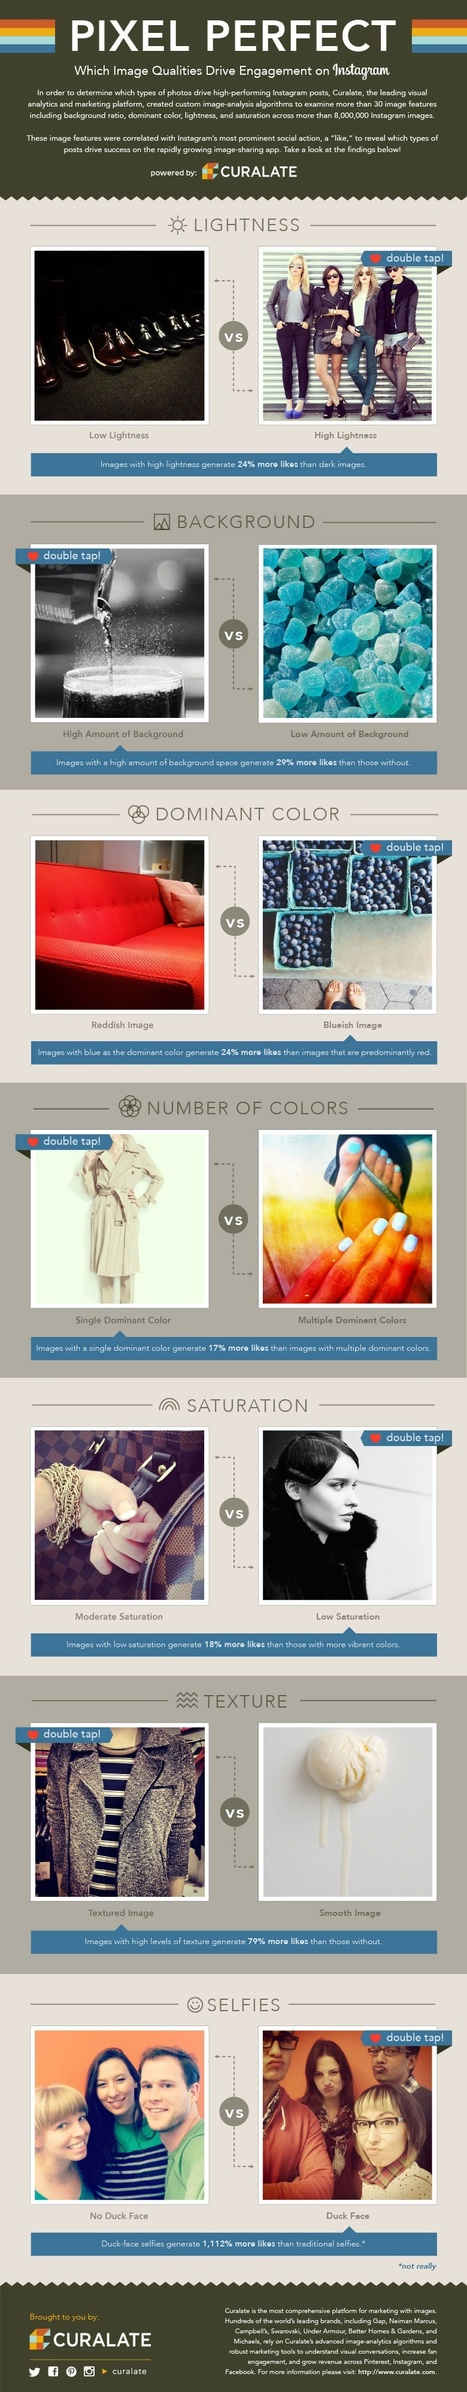 Instagram Success: These Types of Images Drive the Most Engagement (Infographic) | Personal Branding and Professional networks - @Socialfave @TheMisterFavor @TOOLS_BOX_DEV @TOOLS_BOX_EUR @P_TREBAUL @DNAMktg @DNADatas @BRETAGNE_CHARME @TOOLS_BOX_IND @TOOLS_BOX_ITA @TOOLS_BOX_UK @TOOLS_BOX_ESP @TOOLS_BOX_GER @TOOLS_BOX_DEV @TOOLS_BOX_BRA | Scoop.it